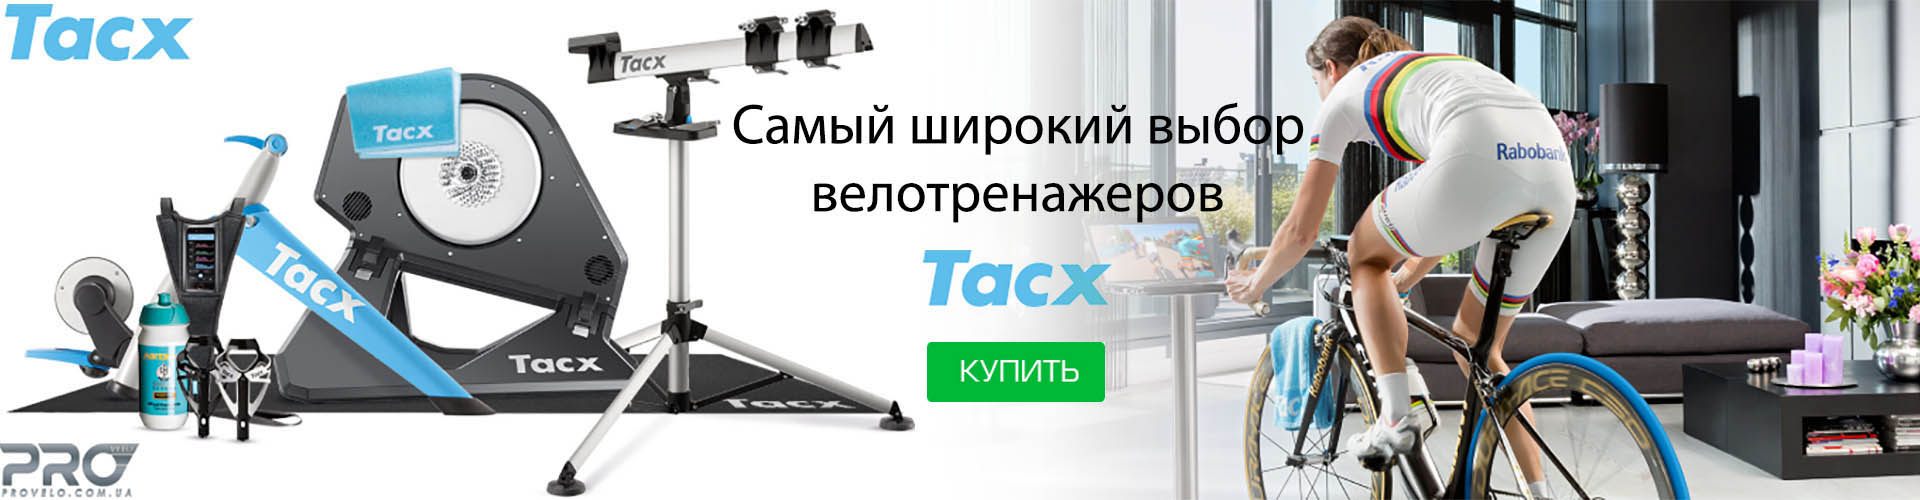 tacx692018